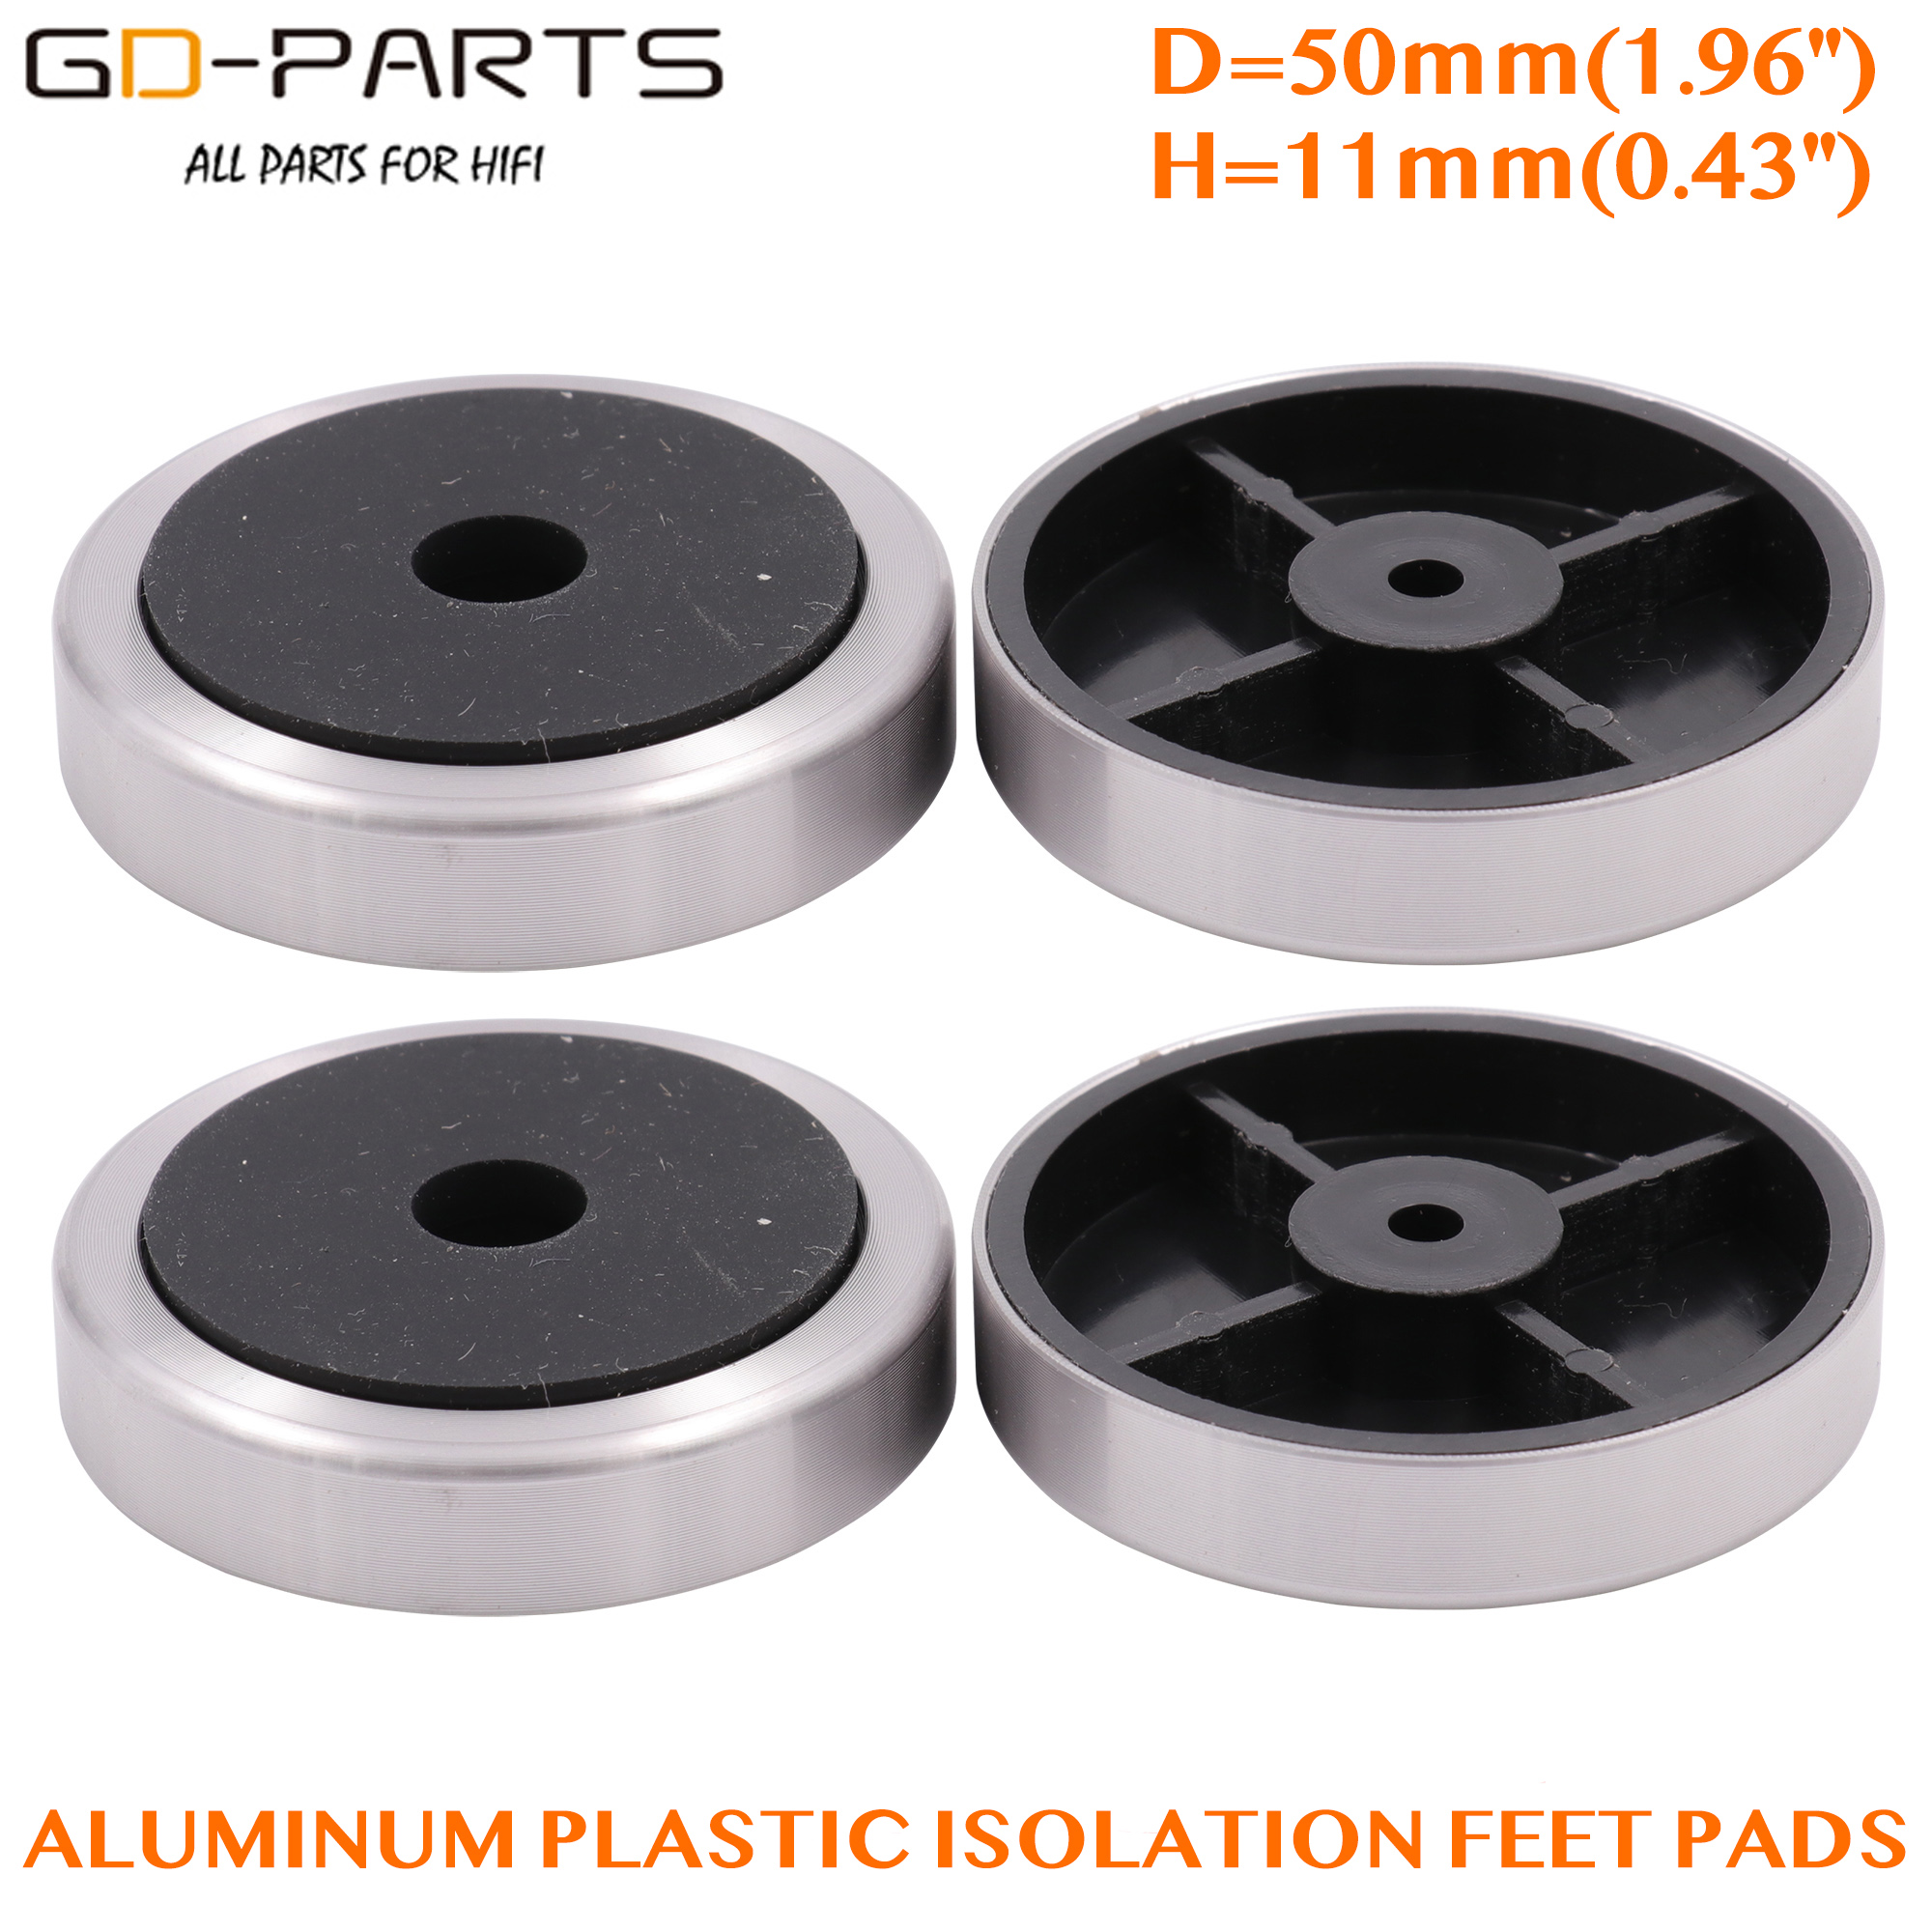 GD-PARTS 50*11mm Aluminum Plastic Amplifier Foot Feet Speaker Computer CD DVD Chassis Isolation Stand Base Pads Pack Of 4PCS